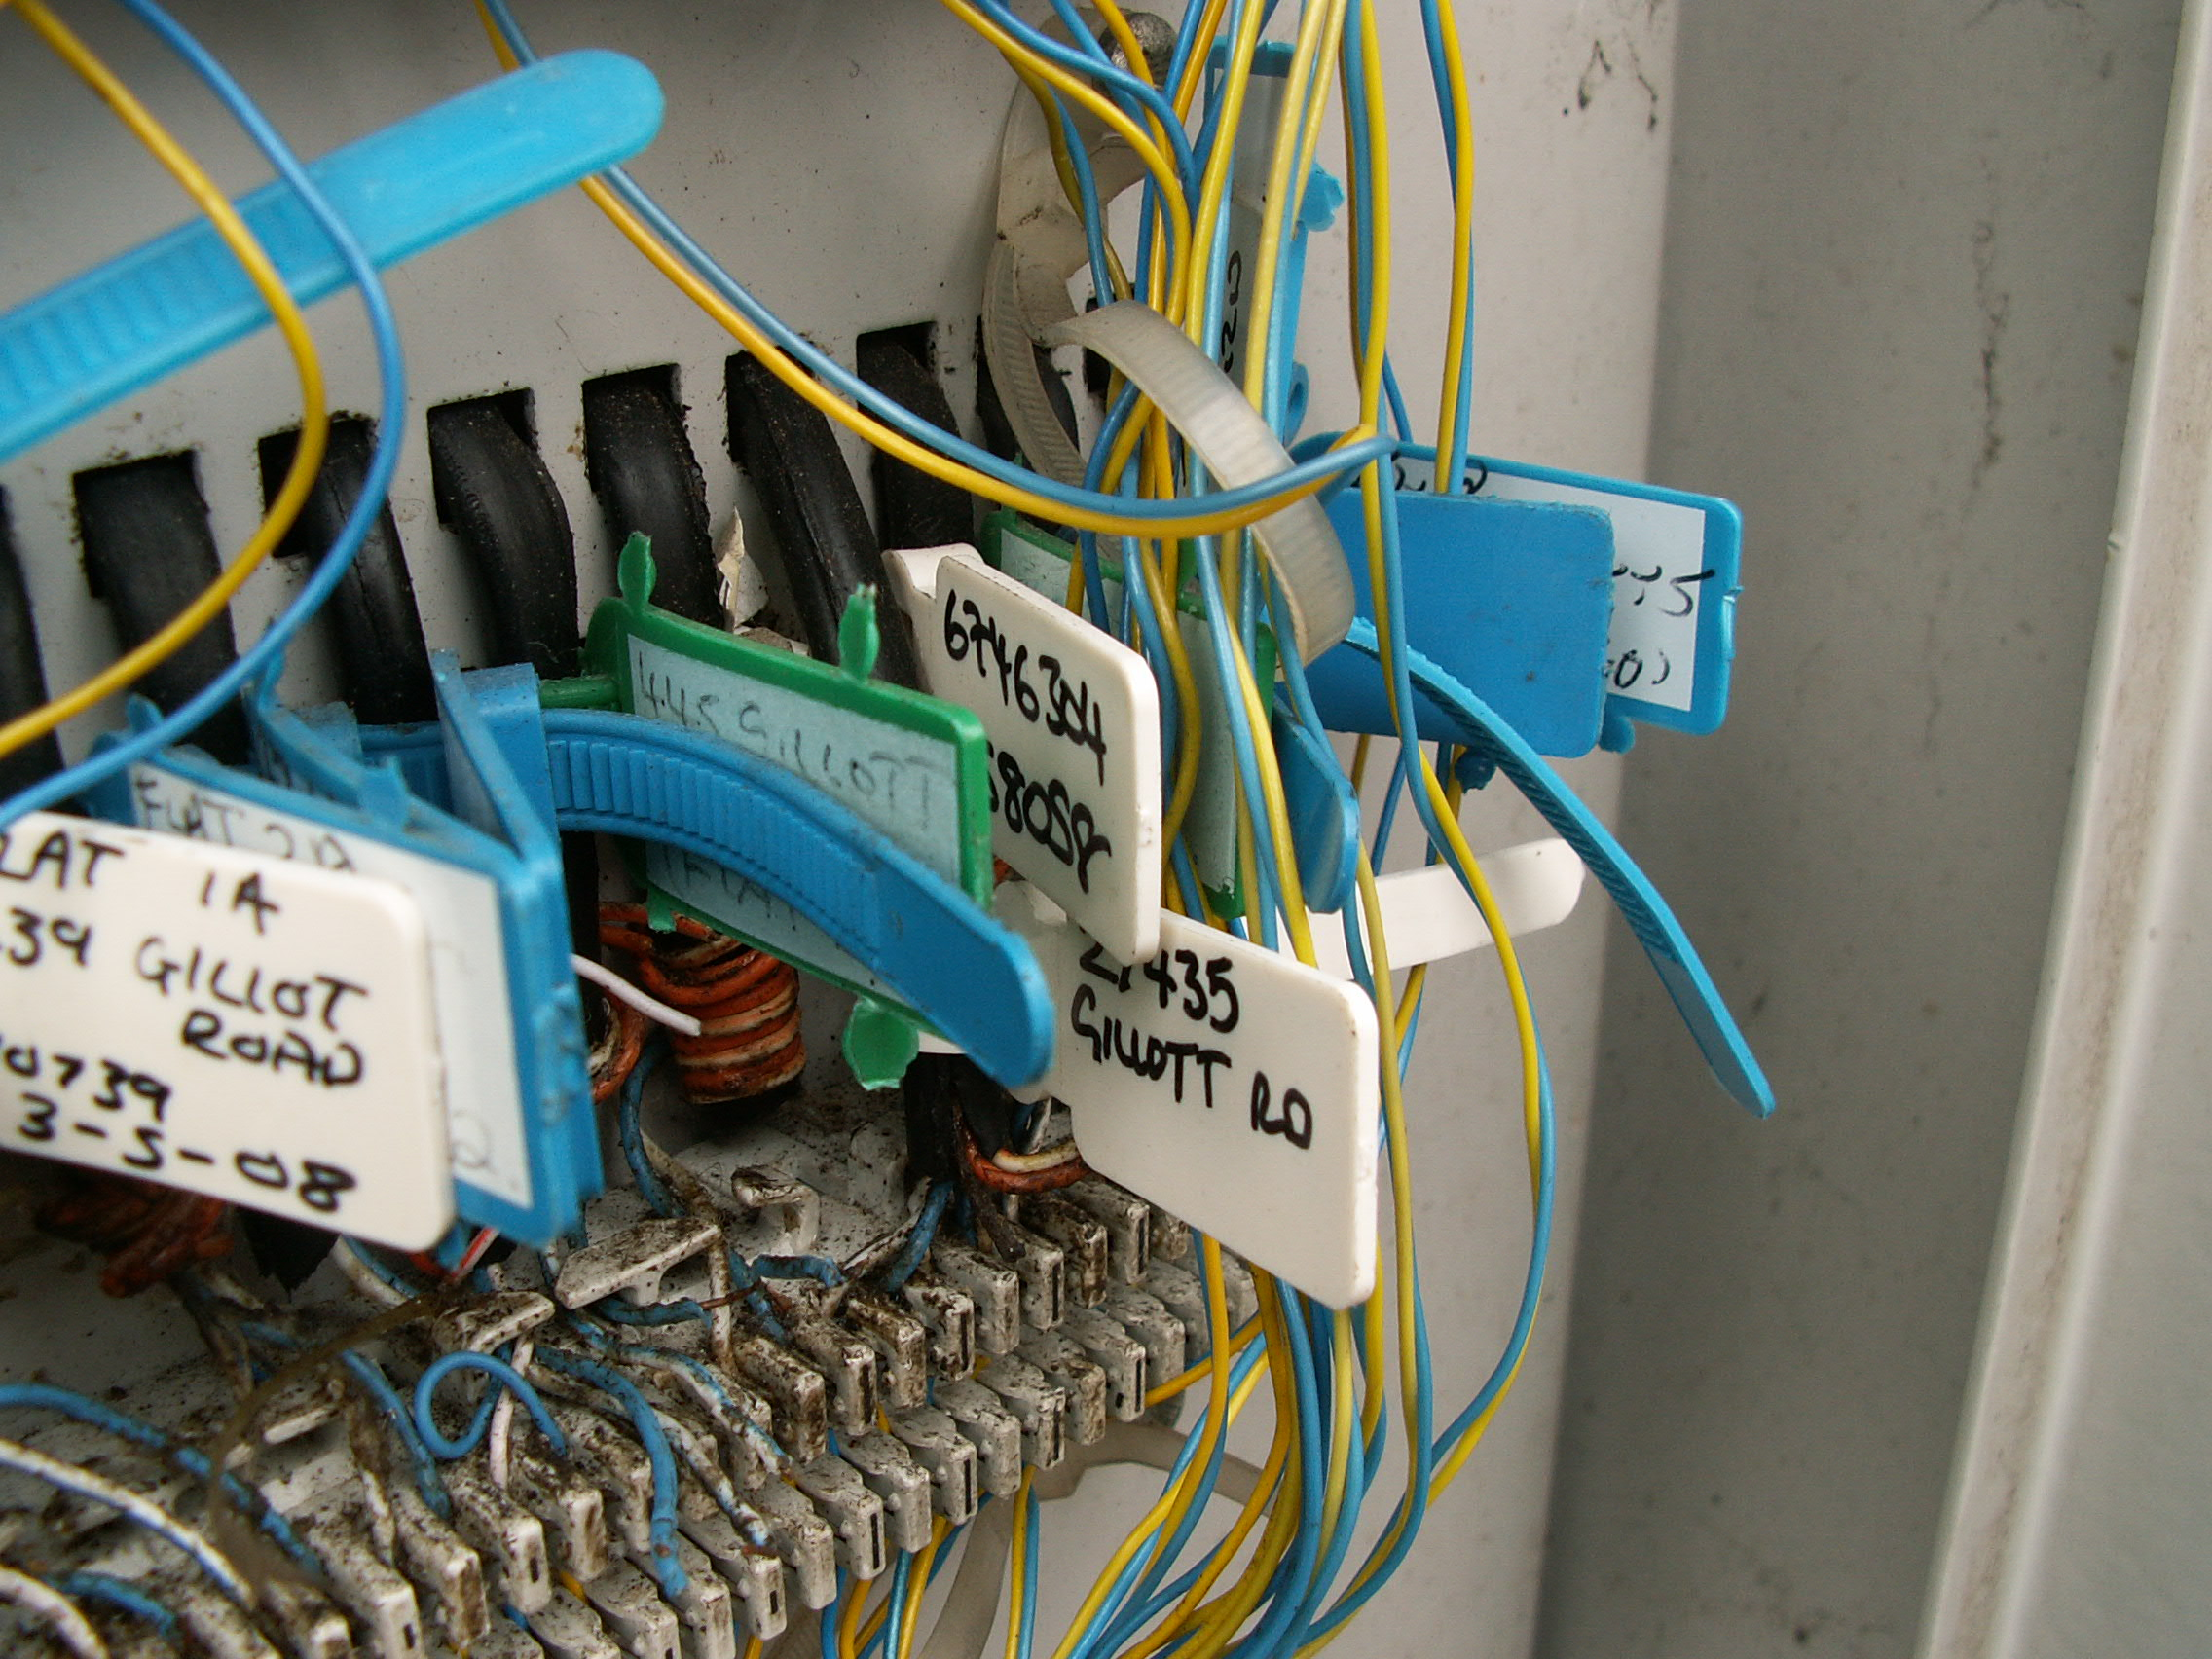 Photos Inside A Virgin Media Cable Street Cabinet